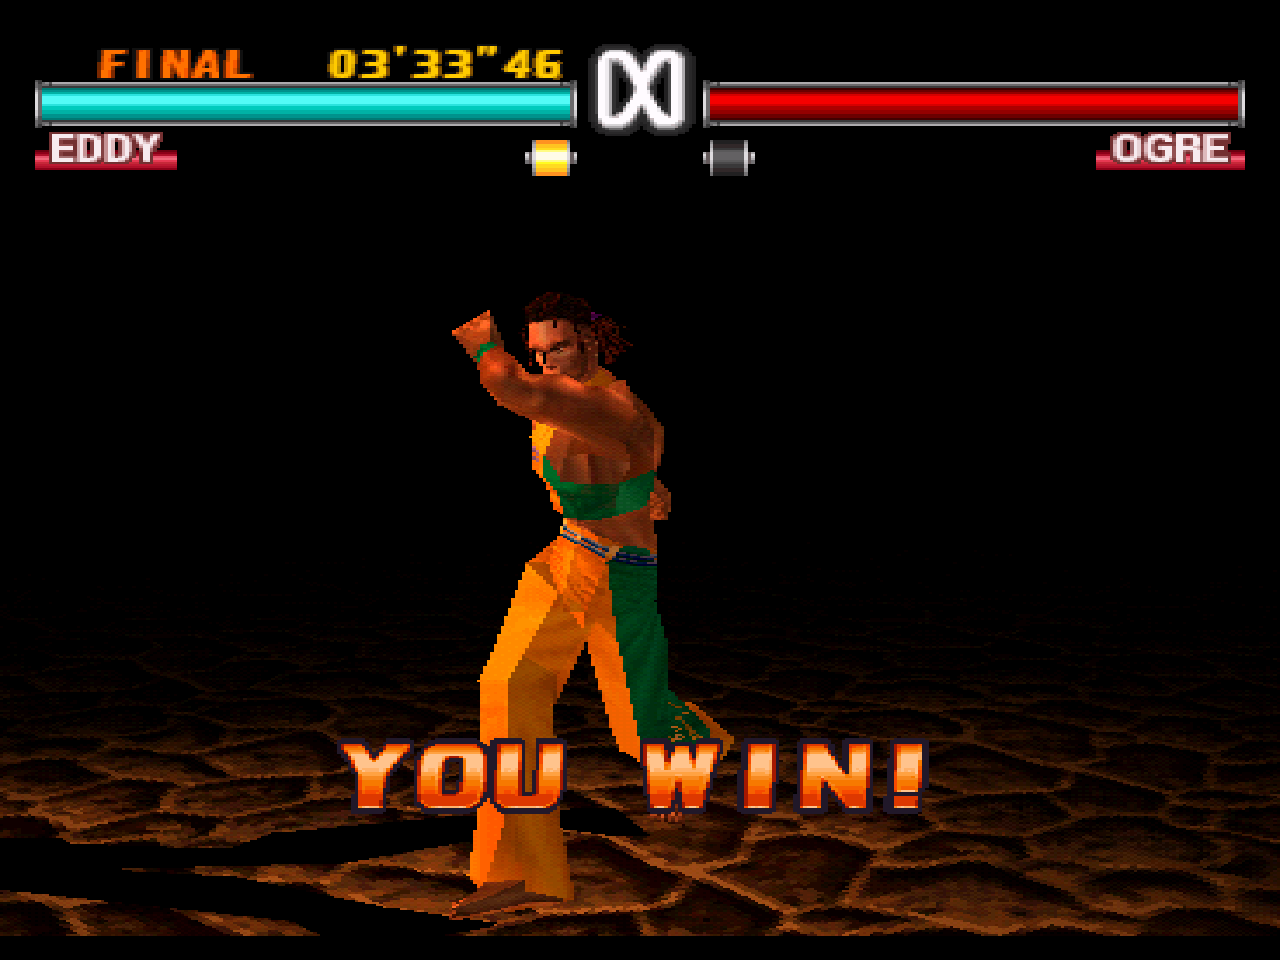 https://s3.eu-west-3.amazonaws.com/games.anthony-dessalles.com/Tekken 3 PS1 2020 - Screenshots/Tekken 3-201204-182438.png